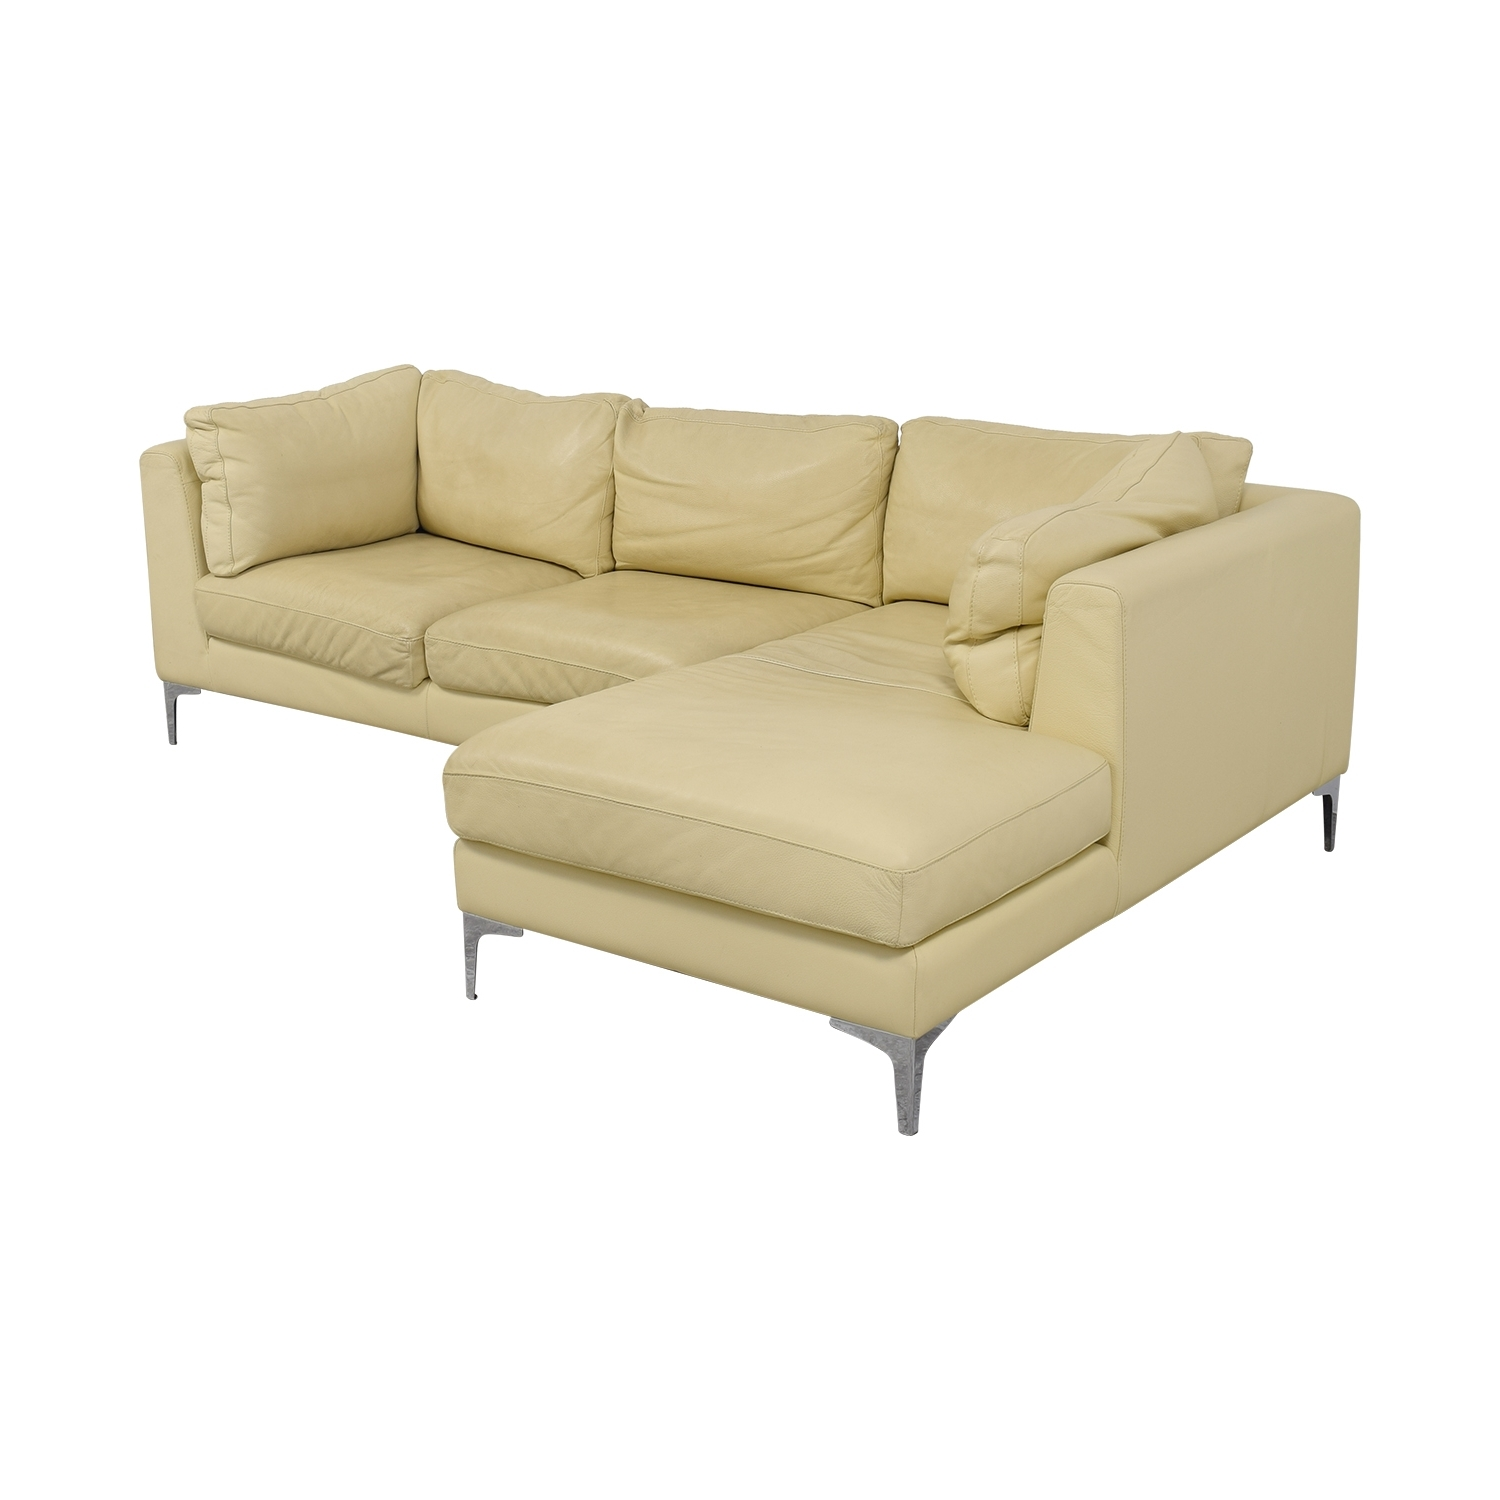 [%51% Off – Design Within Reach Design Within Reach Cream Leather Intended For Most Up To Date Cream Chaise Sofas|Cream Chaise Sofas Regarding Well Liked 51% Off – Design Within Reach Design Within Reach Cream Leather|Current Cream Chaise Sofas Throughout 51% Off – Design Within Reach Design Within Reach Cream Leather|Most Up To Date 51% Off – Design Within Reach Design Within Reach Cream Leather Inside Cream Chaise Sofas%] (View 5 of 15)